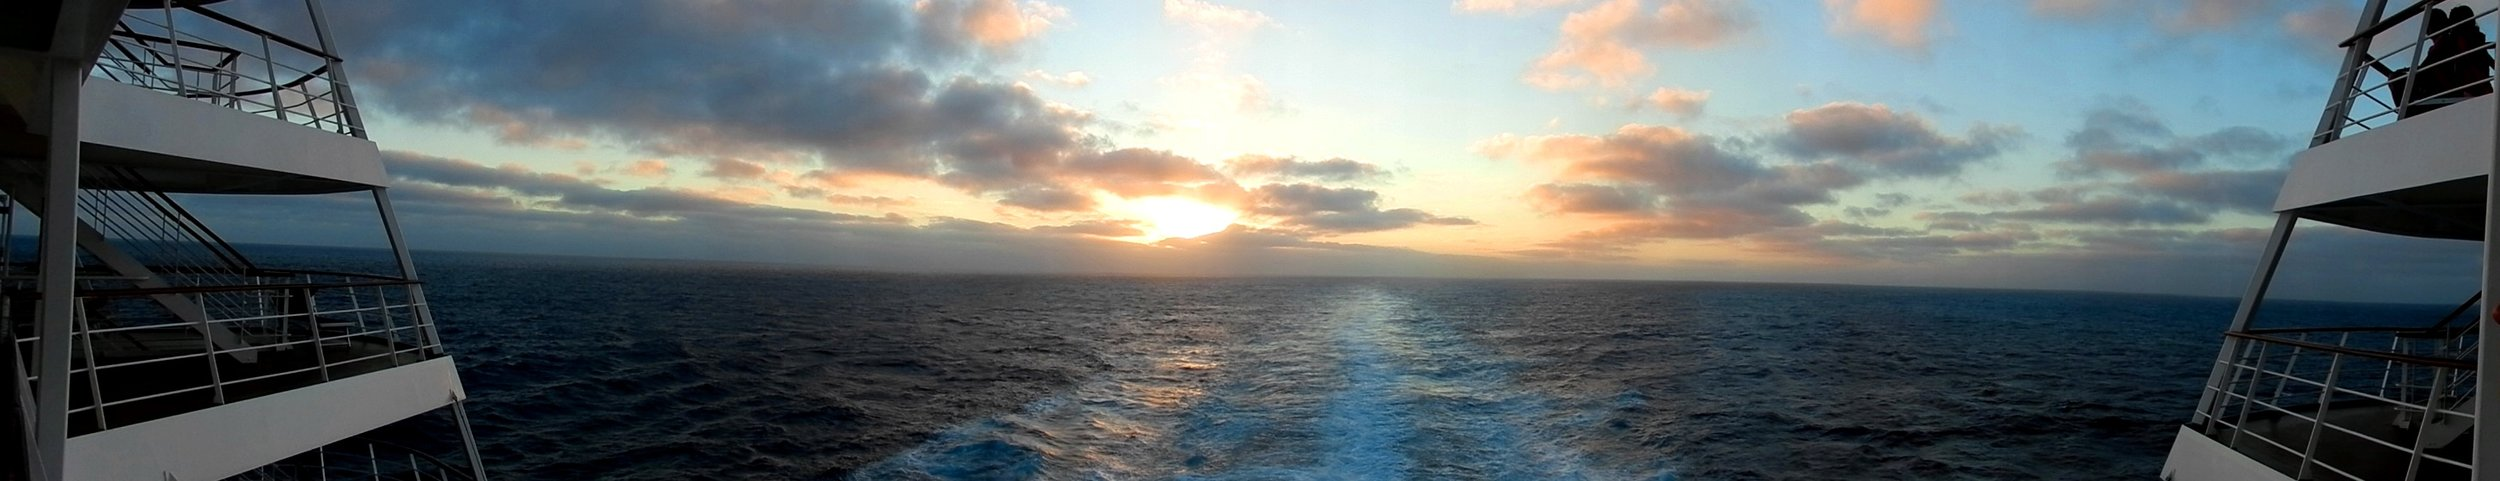 2013 - Sunset at sea, en route to Southern Madagascar